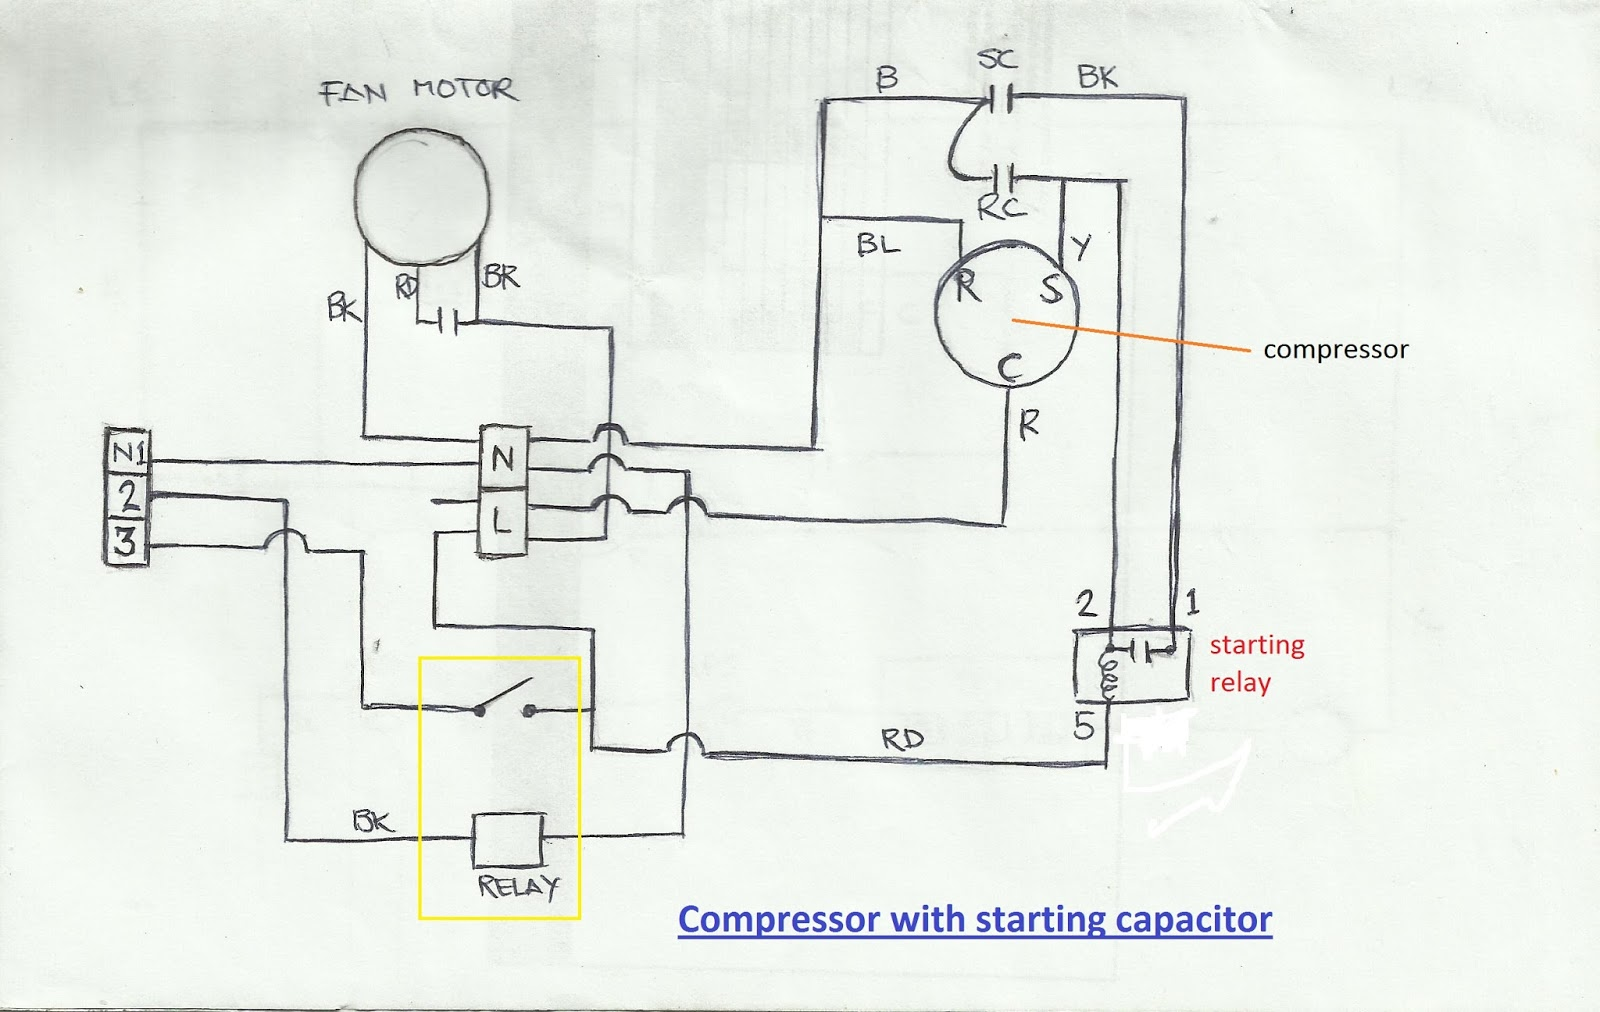 18 refrigeration and air conditioning repair wiring diagram of compressor start capacitor wiring diagram at readyjetset.co